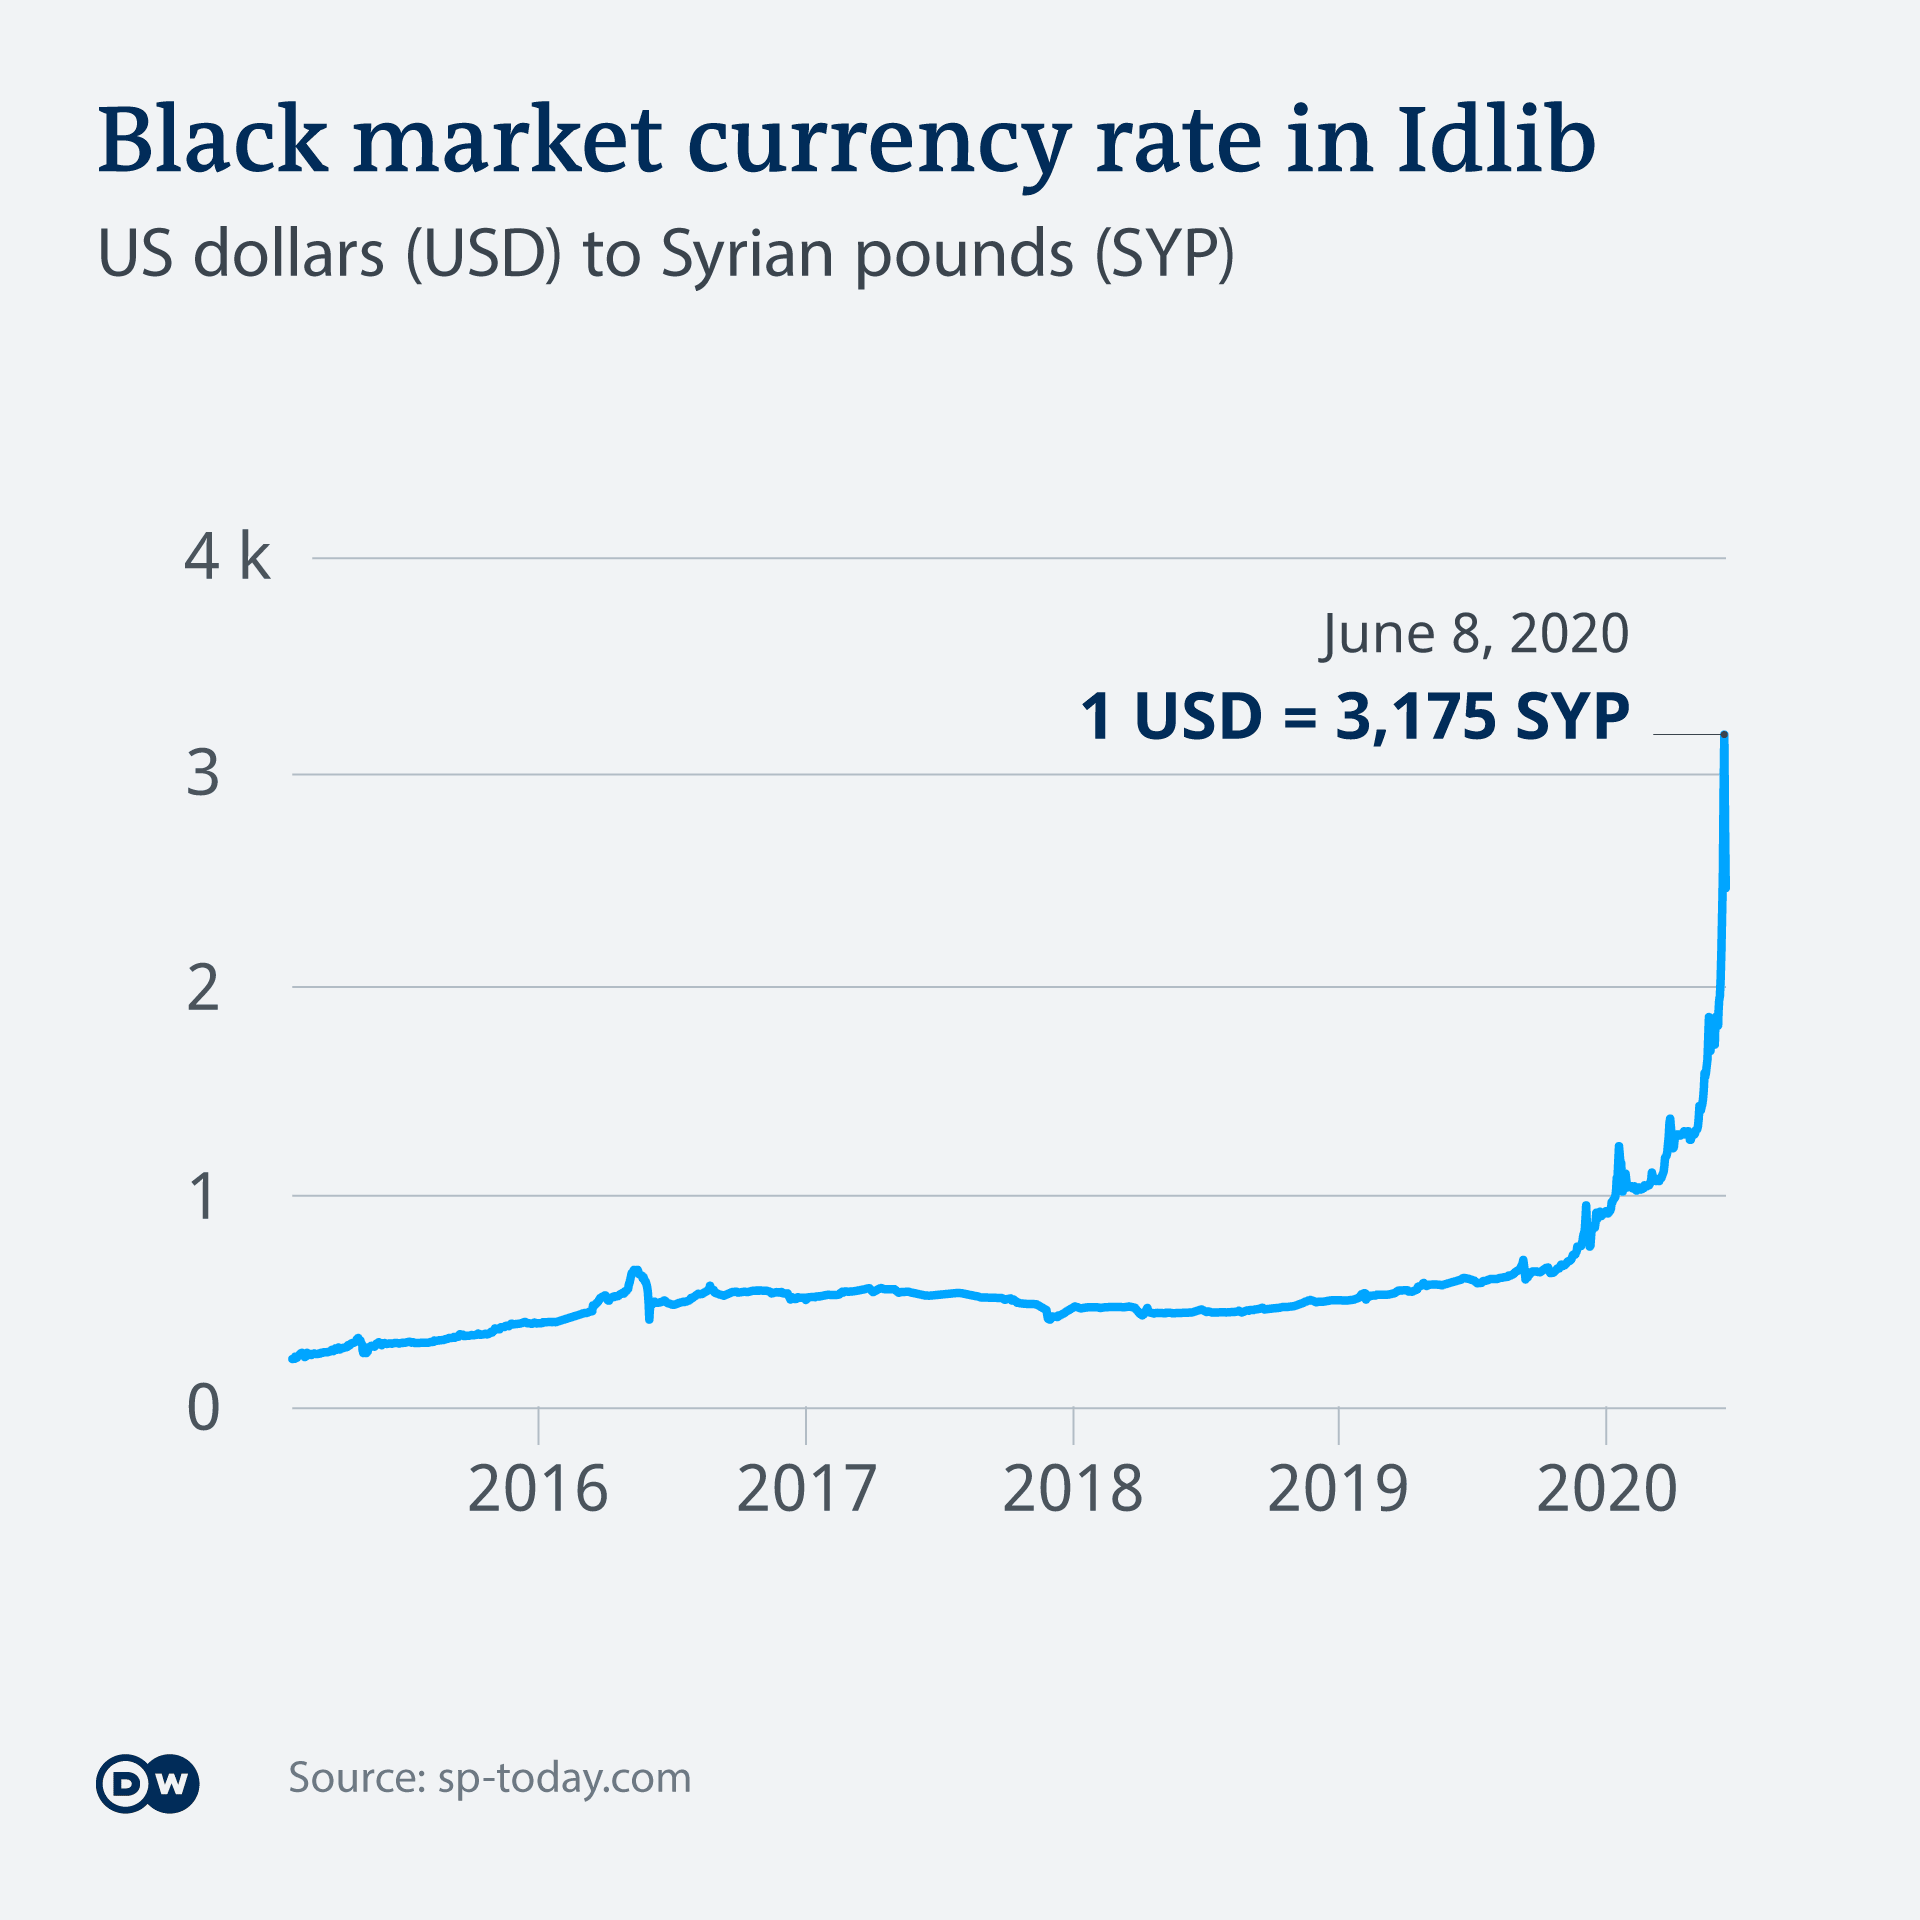 DW Infographic: Black market currency exchange rates in Syria